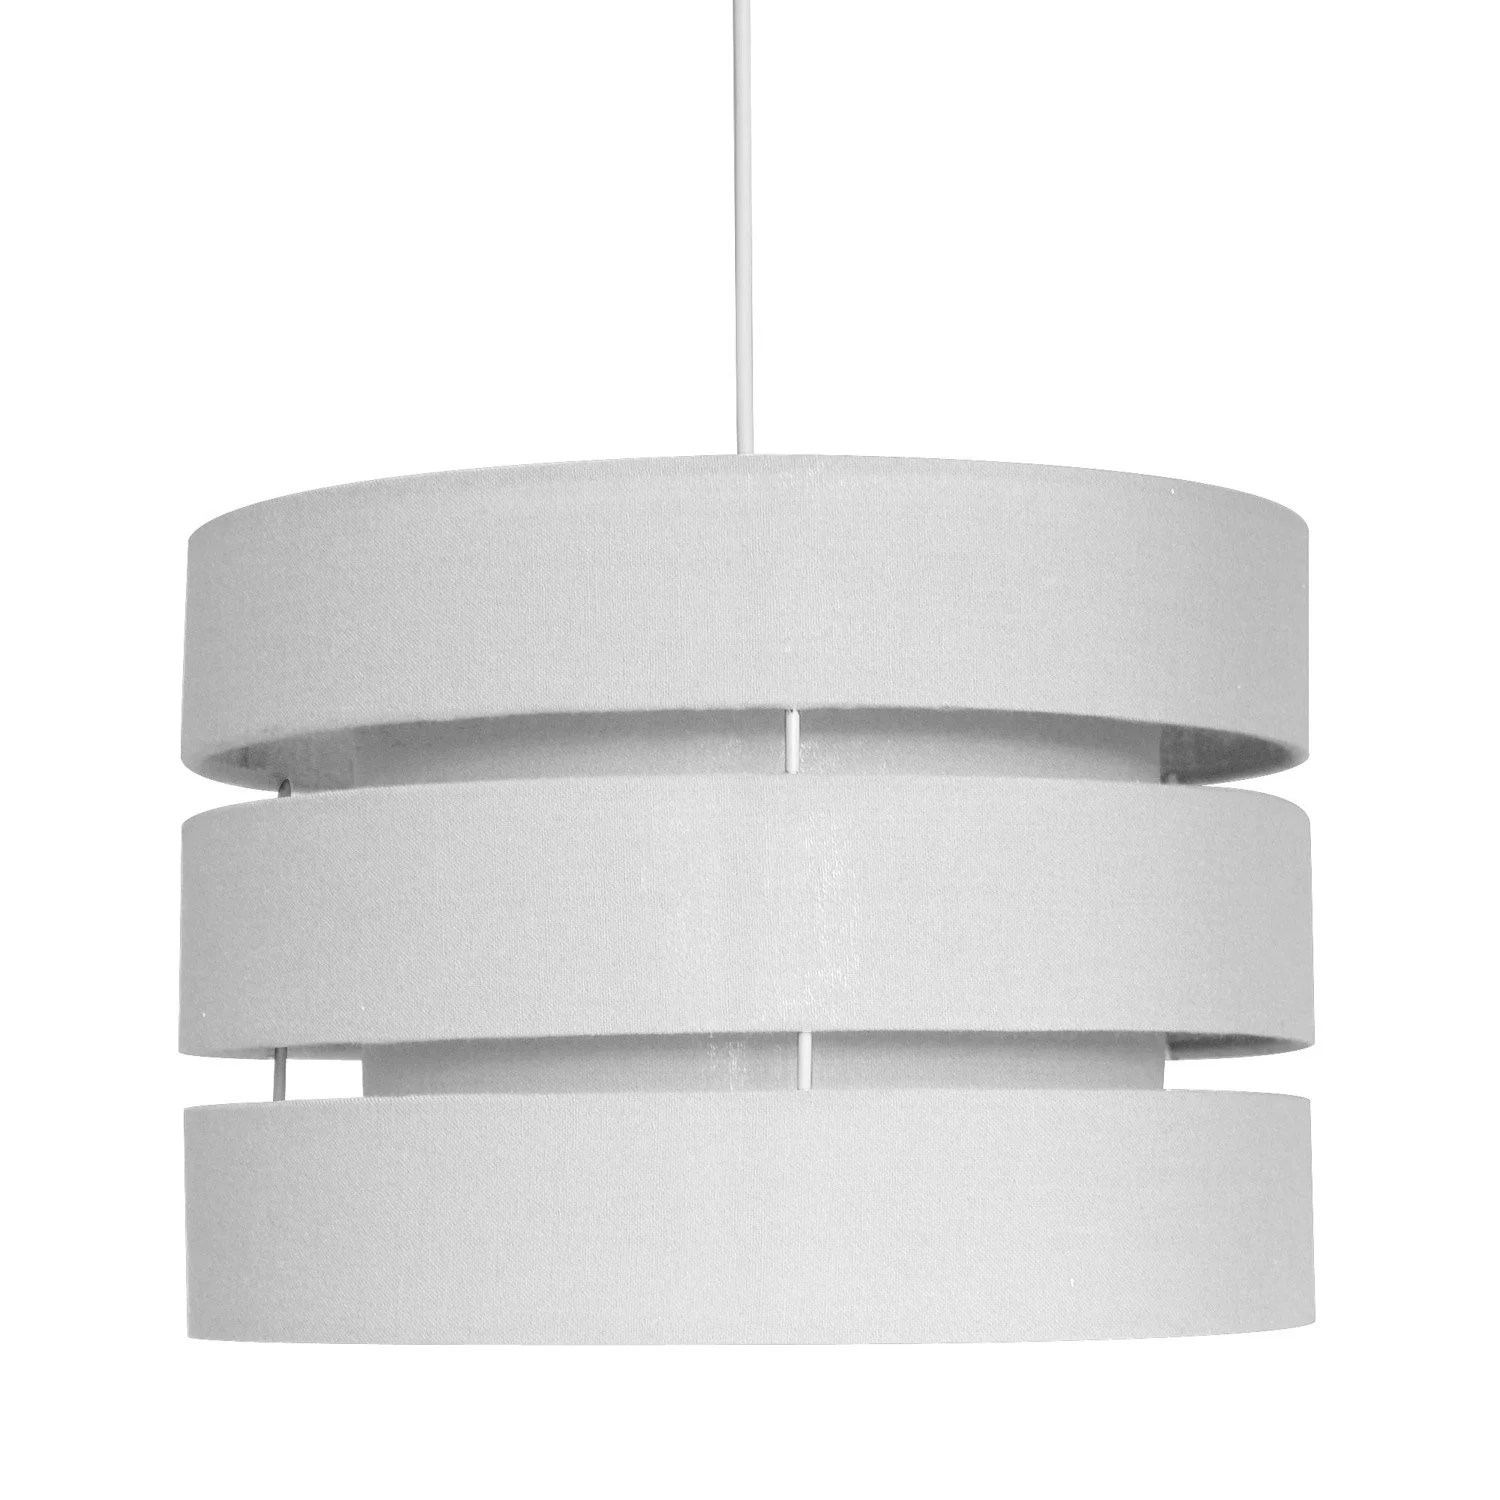 Suspension Blanche Suspension Blanche Design Suspension Blanche Design With